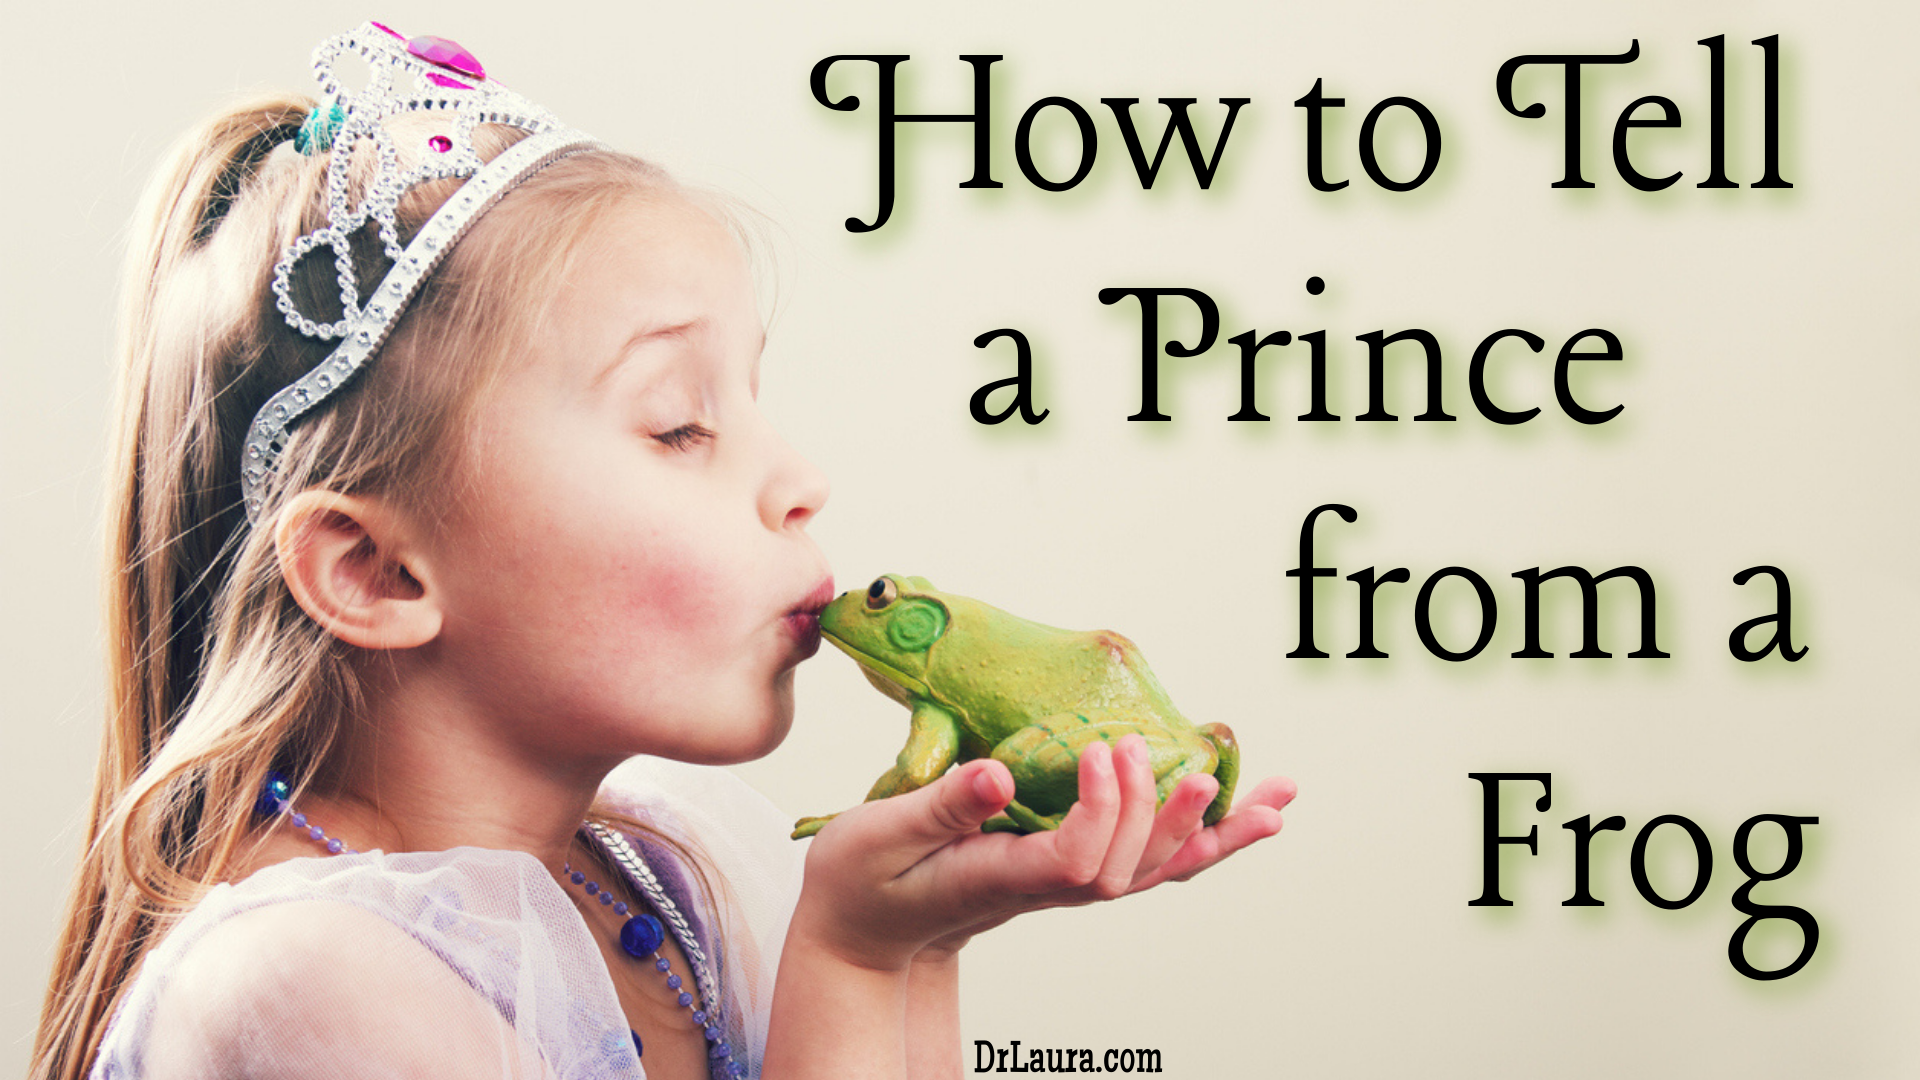 Blog: 10 Ways to Tell a Prince from a Frog